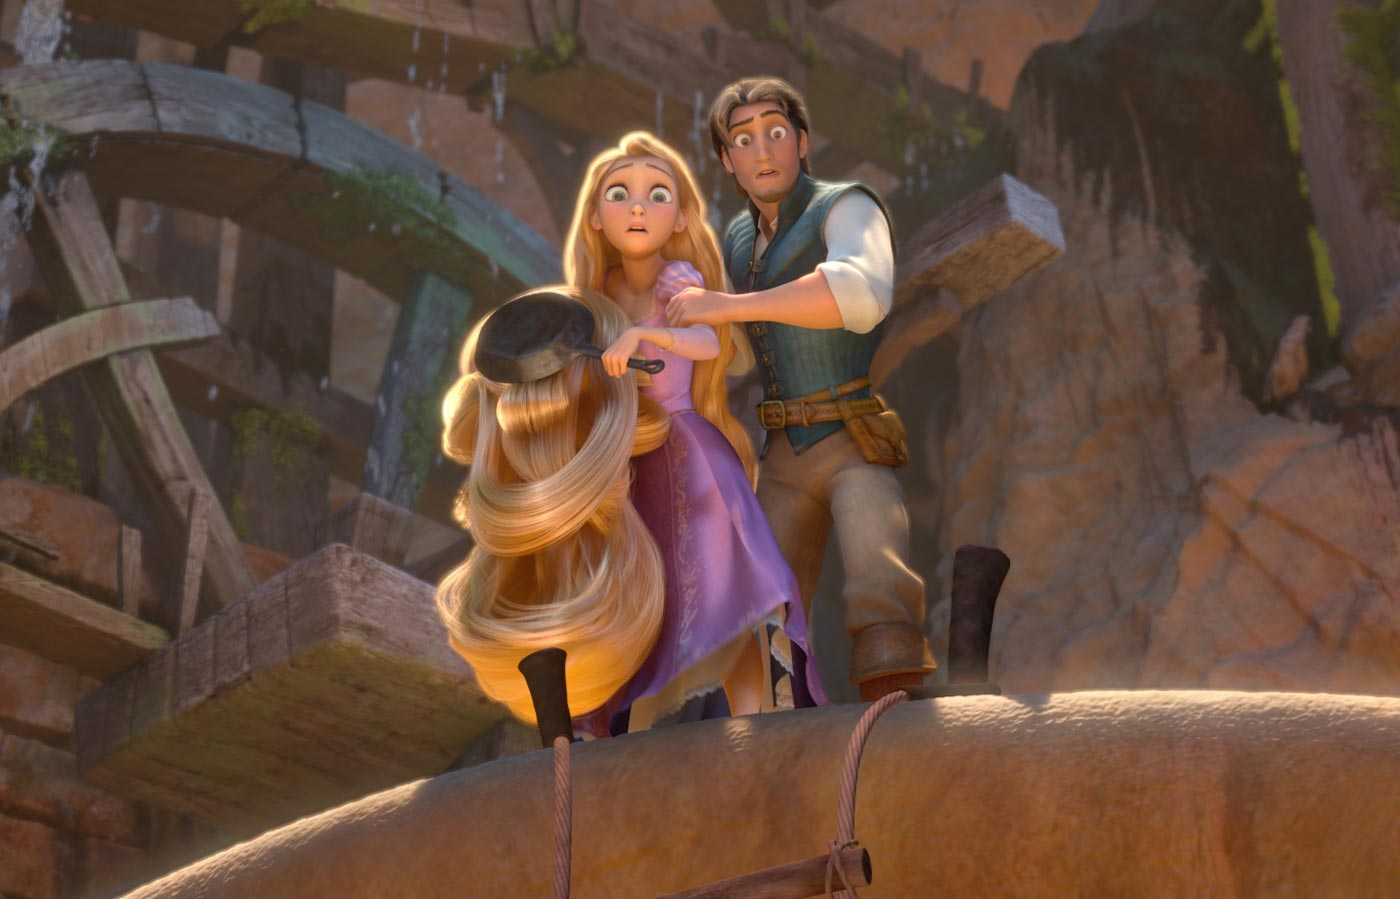 Disney pictures animated